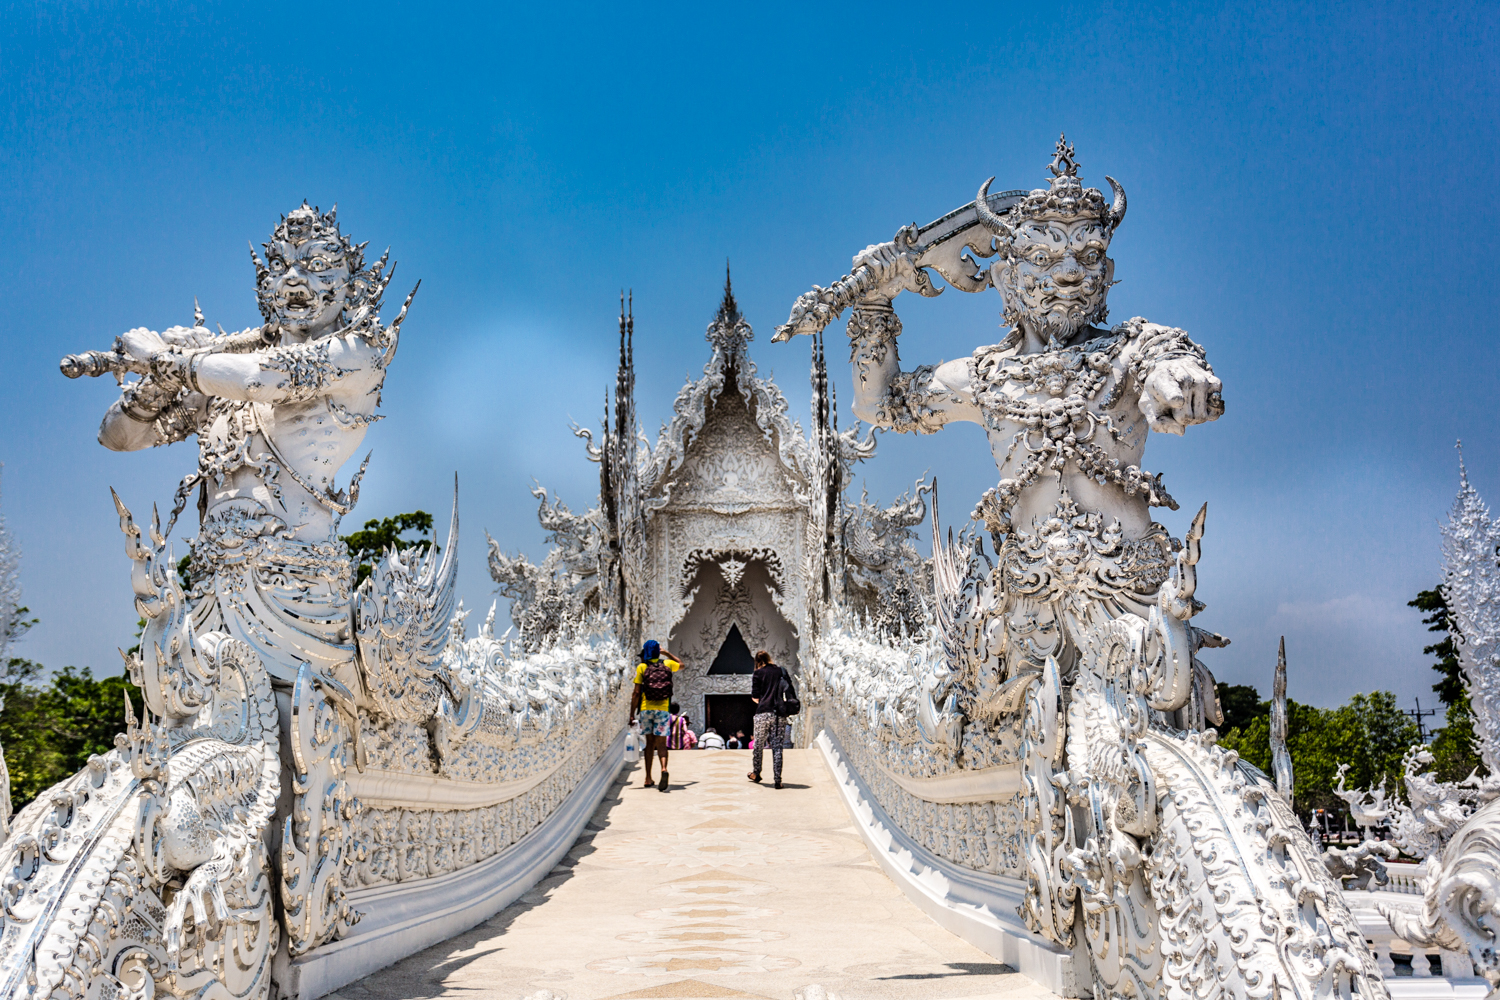 """Death and Rahu guarding to the """"gate of heaven"""" on the far side of the Bridge of the Cycle of Rebirth."""